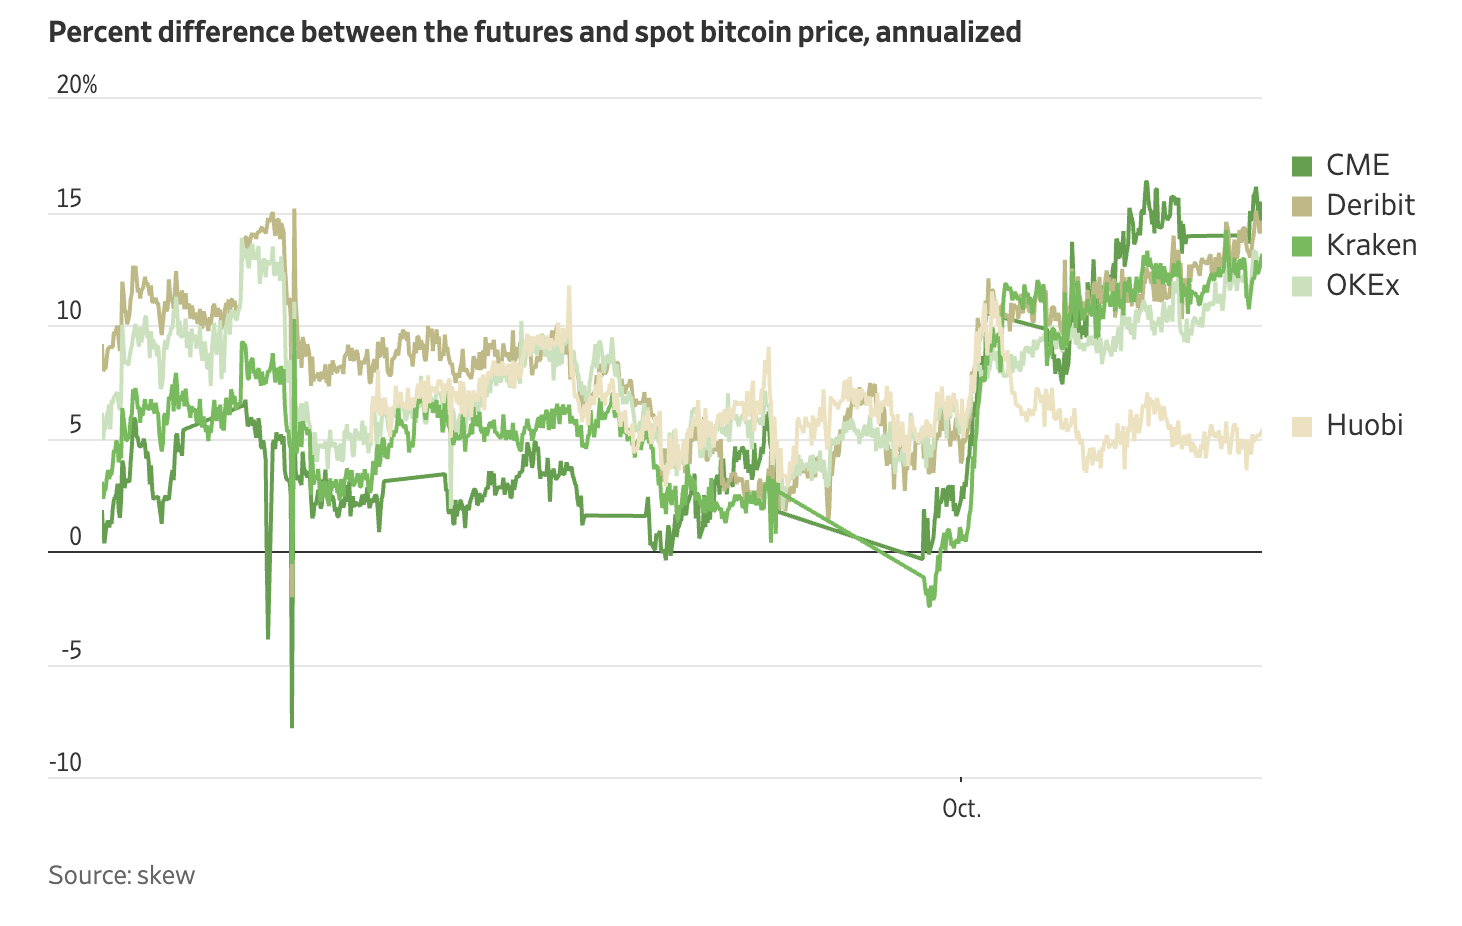 CME Bitcoin futures open interest hits 8-month high, greater than when BTC price was at $65K4